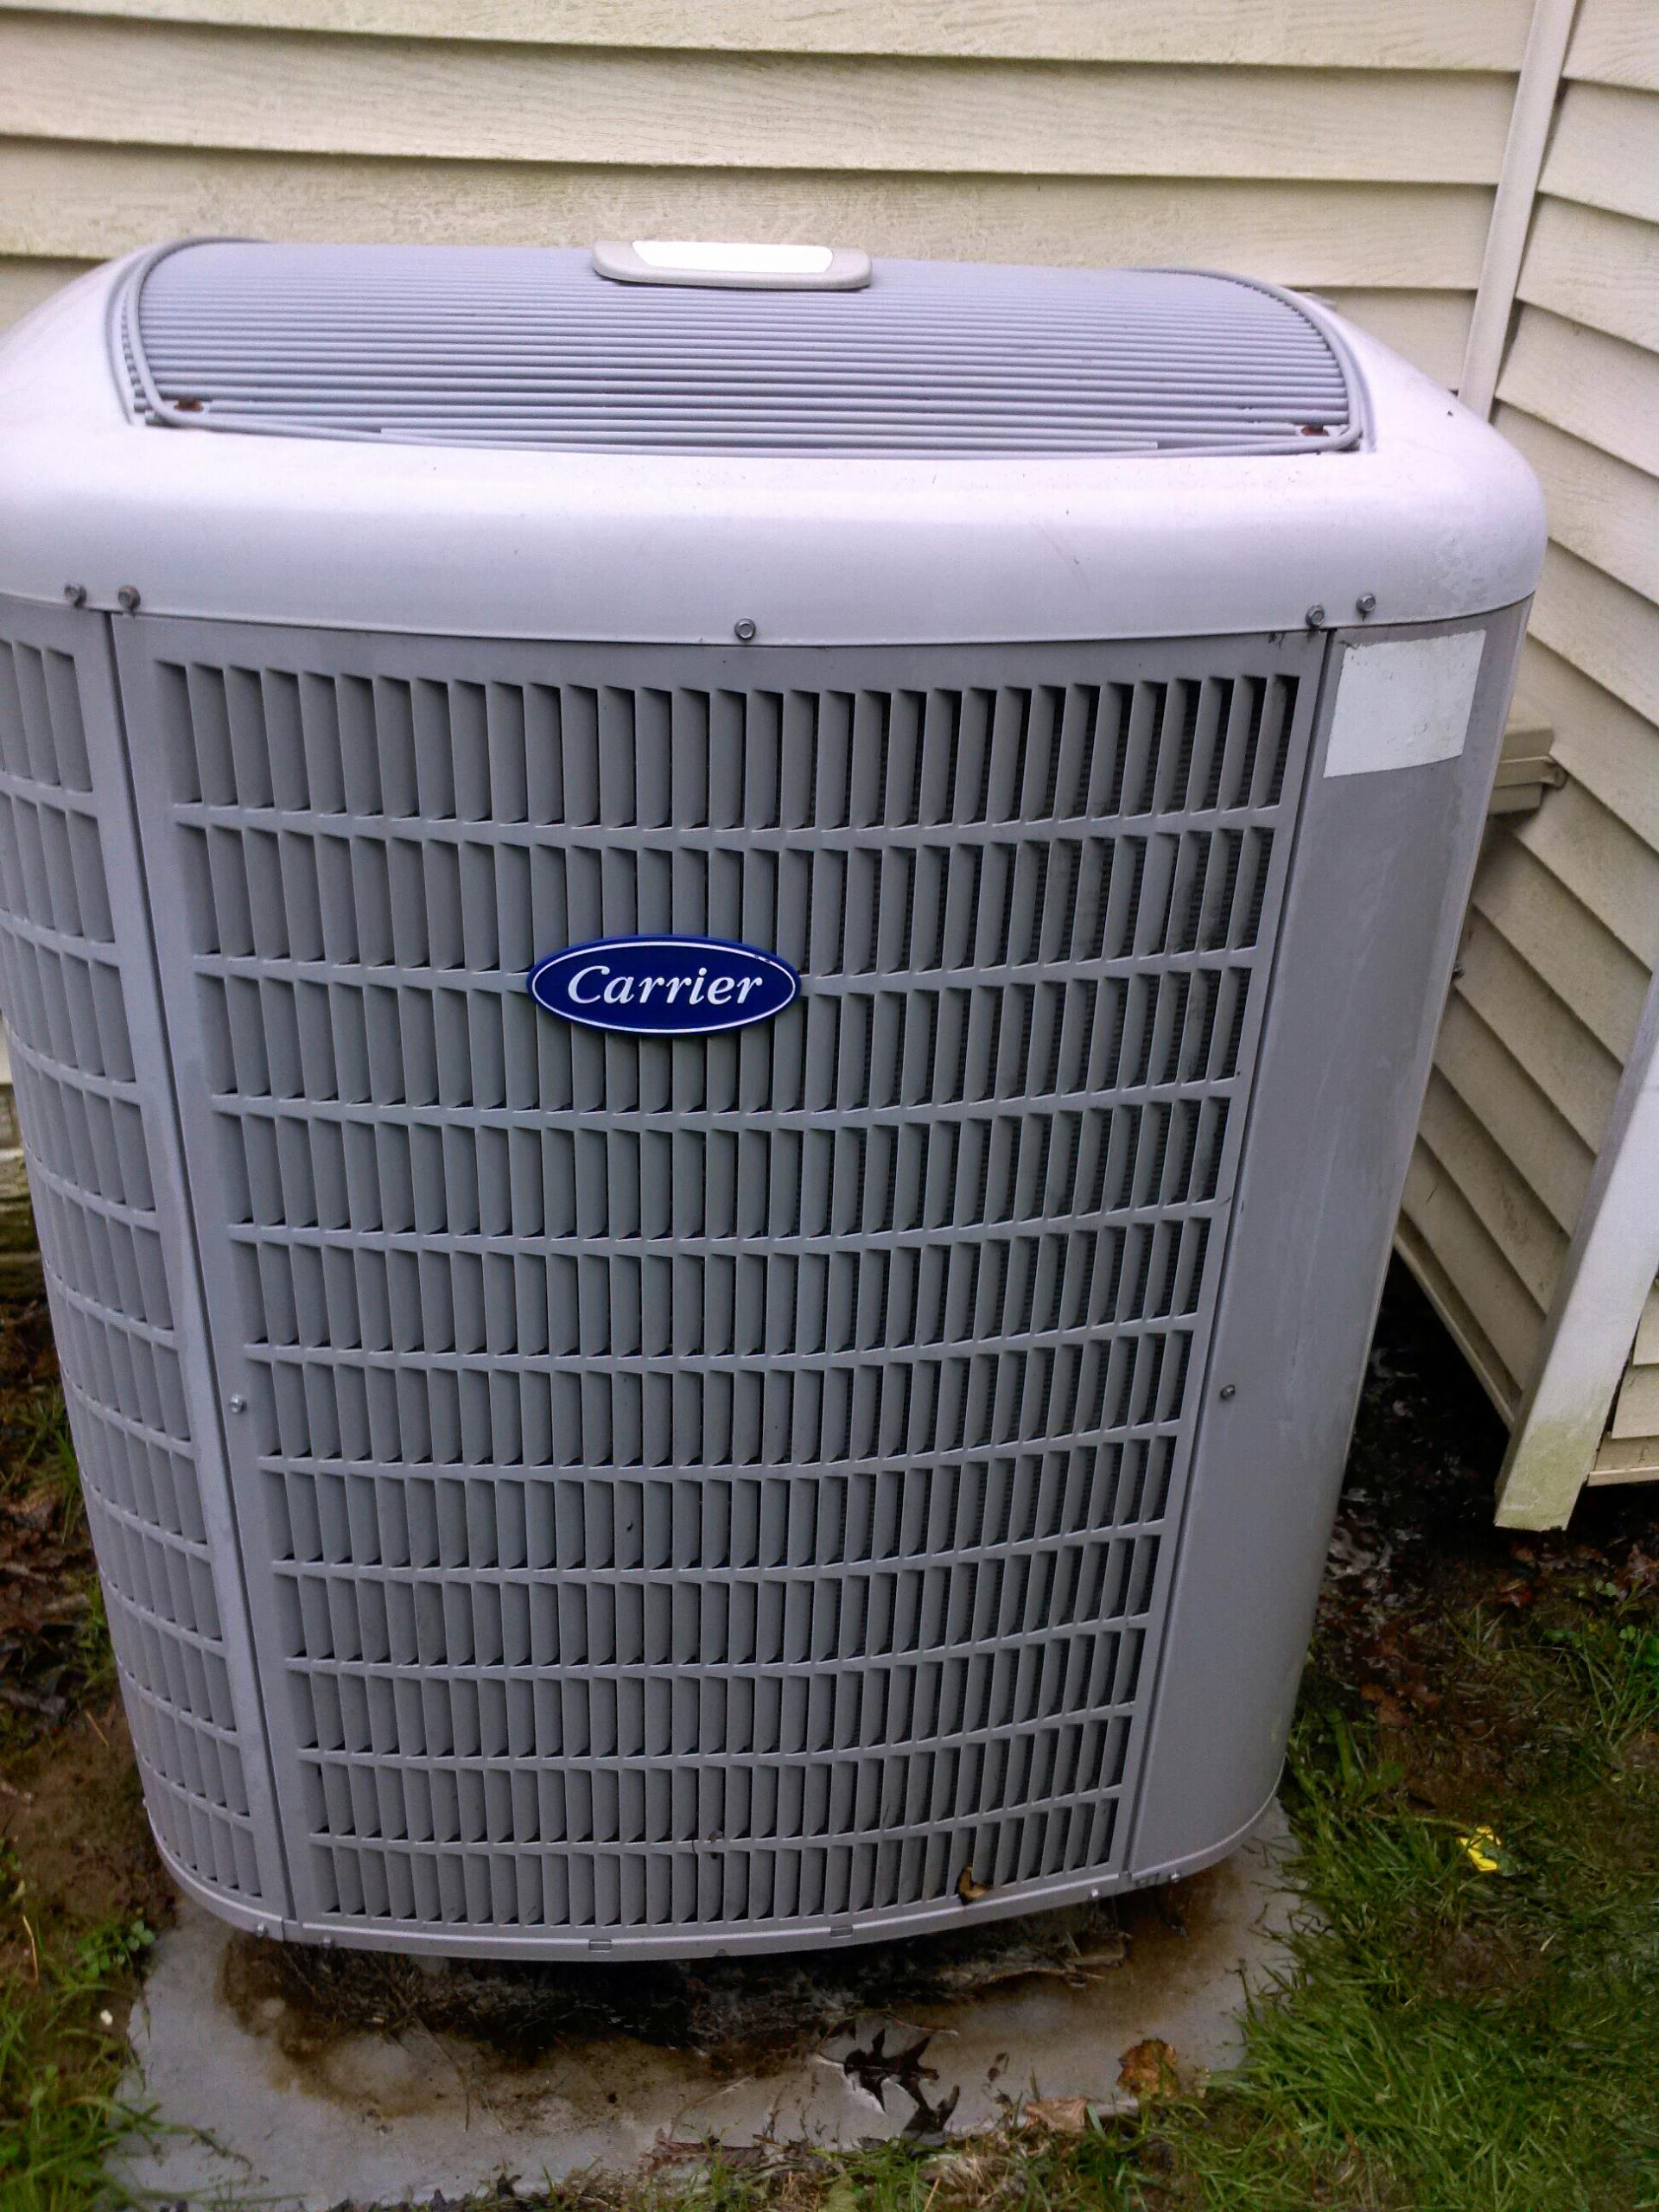 Crofton, MD - Carrier heat pump ac air conditioning & heating system installation repair service call Crofton Maryland